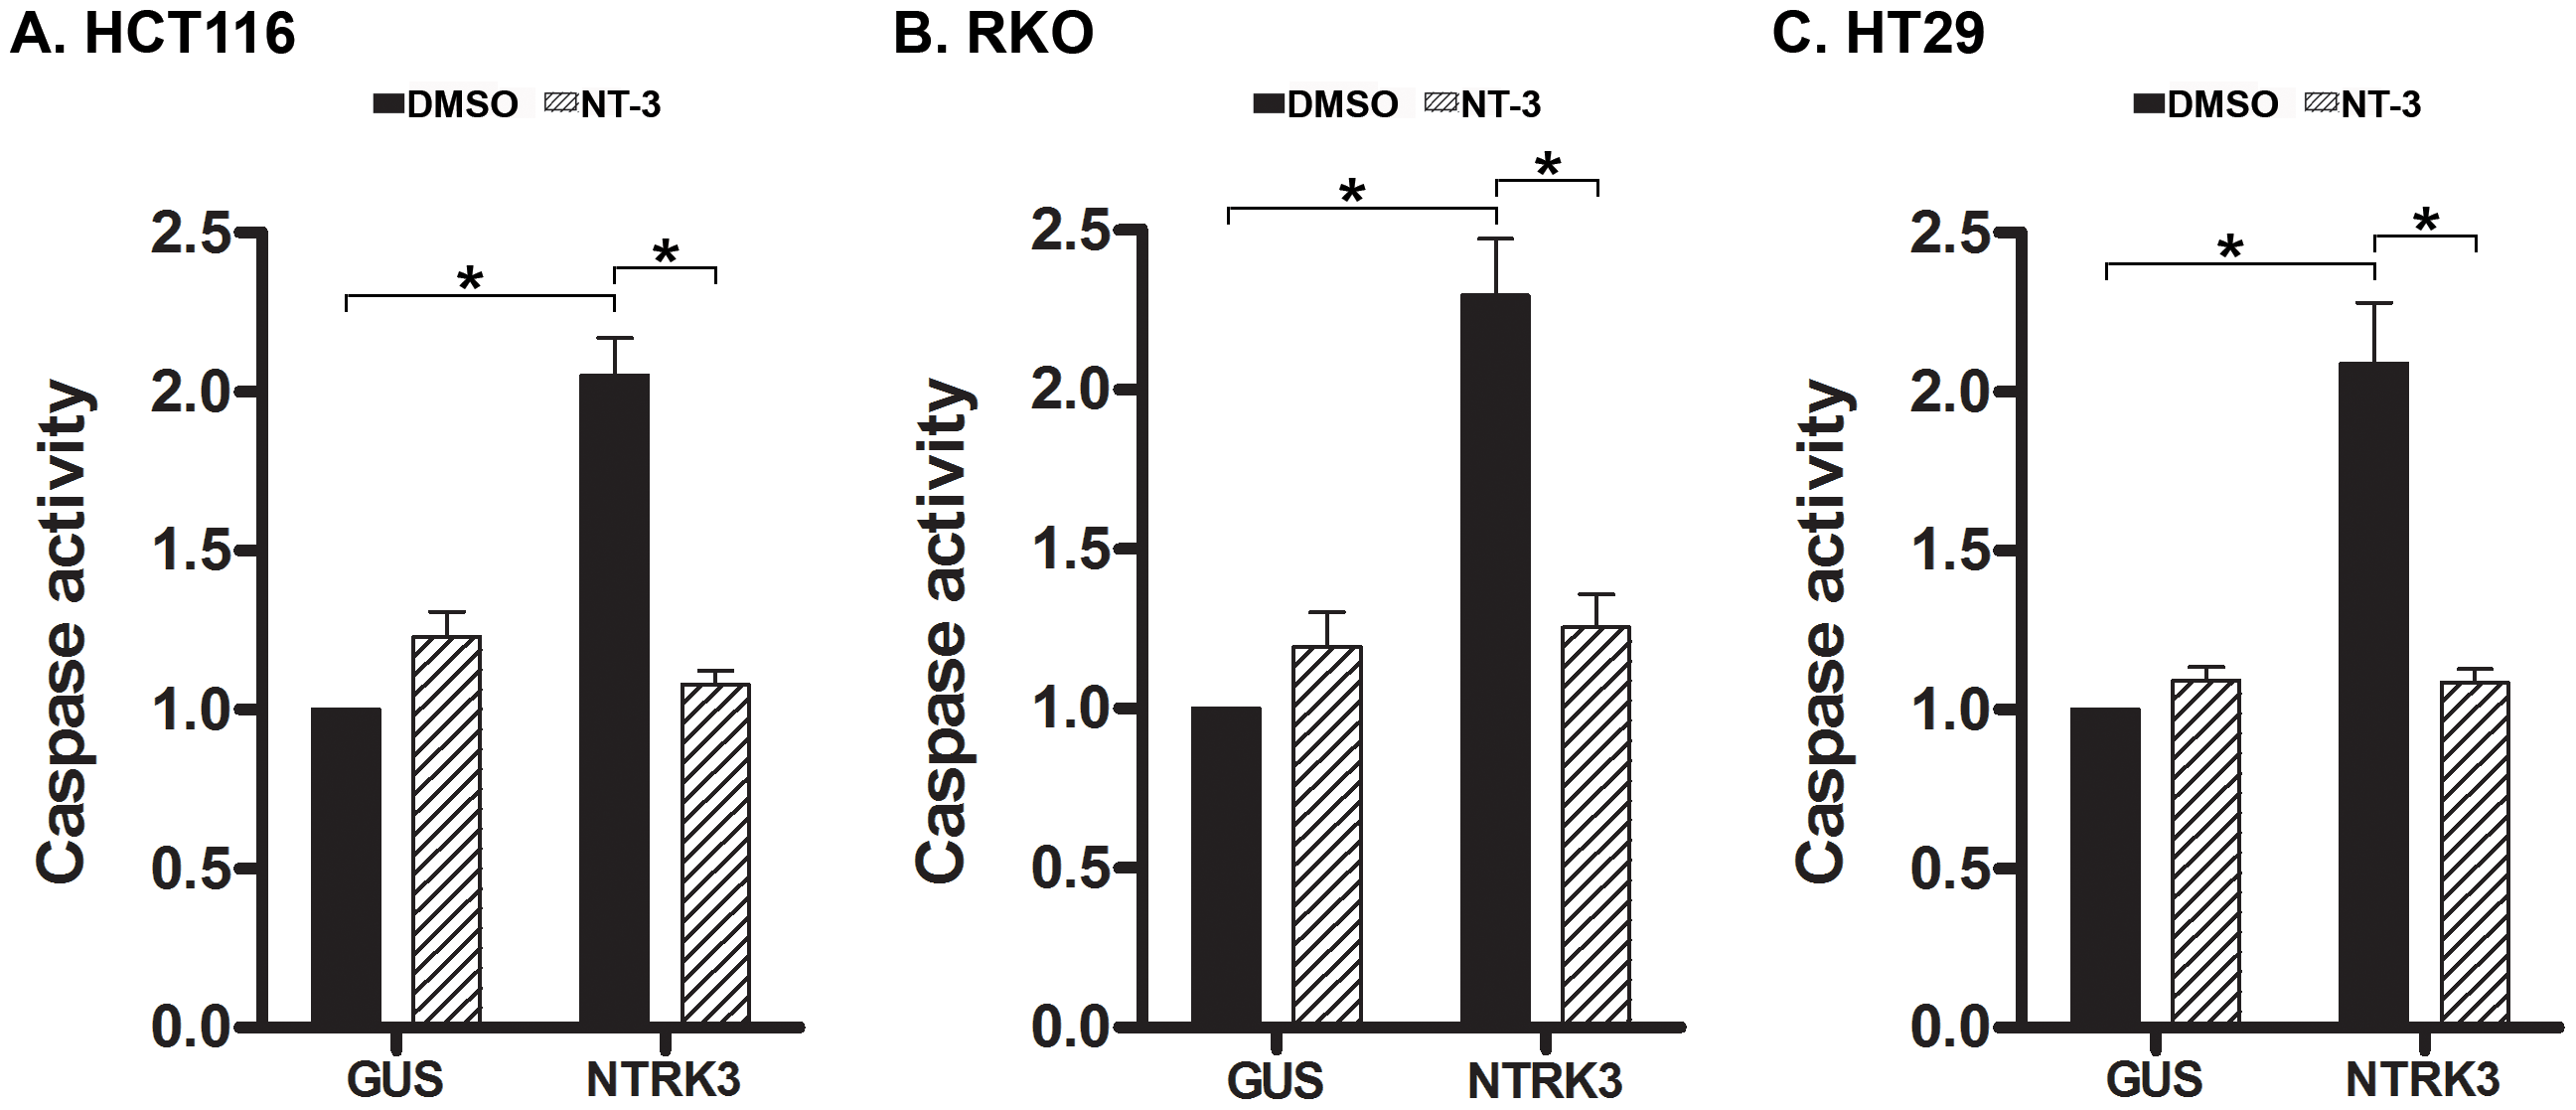 Assessment of normalized caspase 3 and 7 activity after reconstitution of <i>NTRK3</i> in HCT116 (A), RKO (B) and HT29 (C) cells.